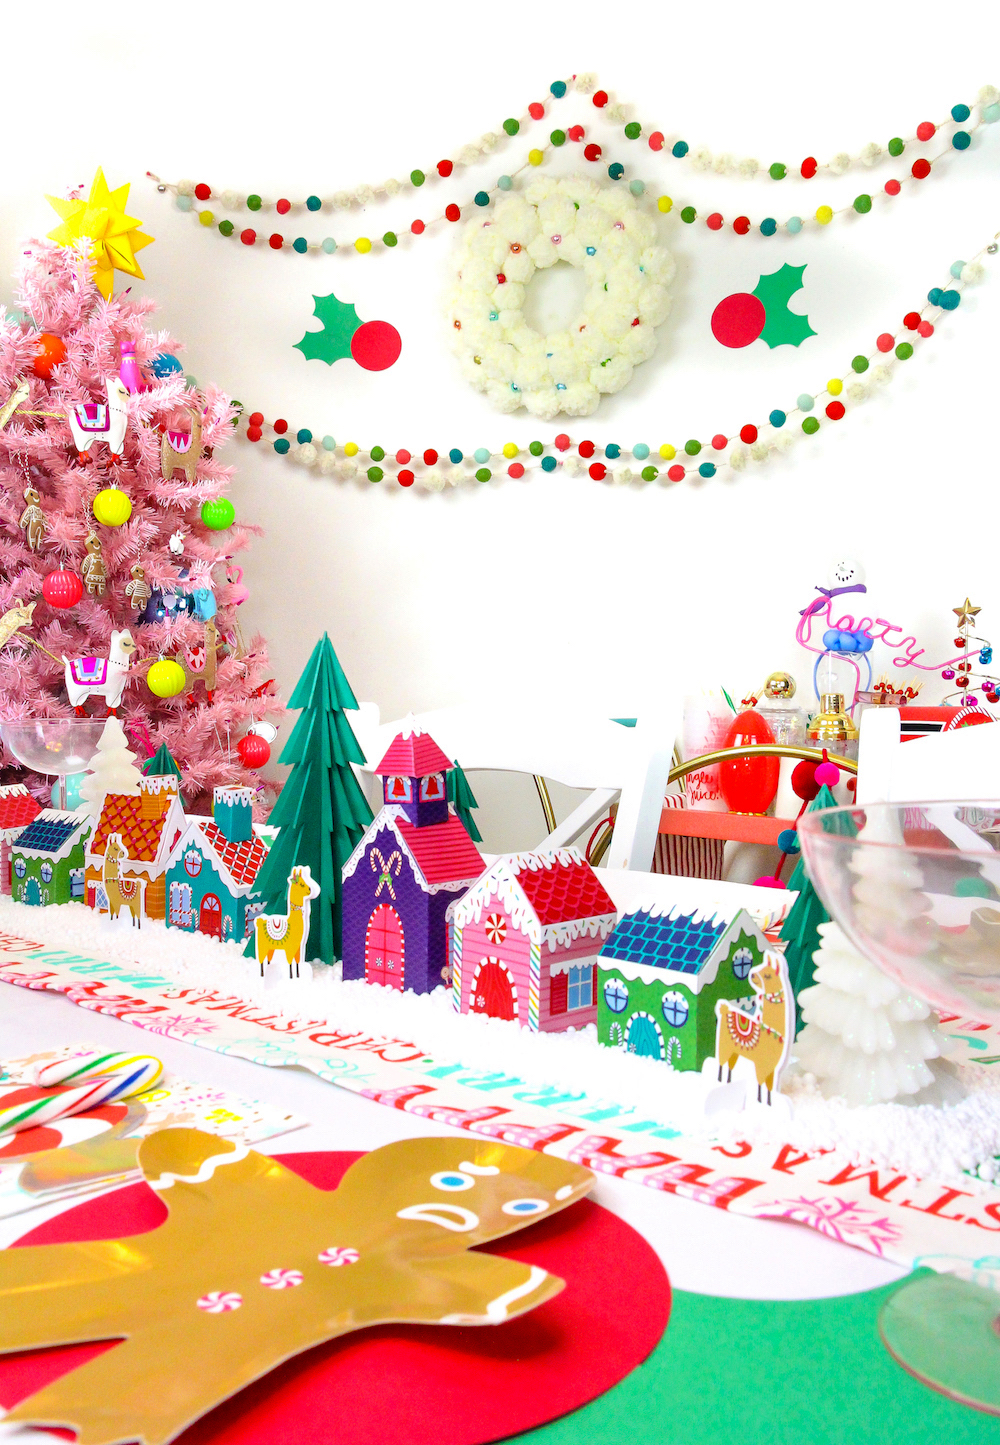 Easy DIY Holiday Party Decorations! ⋆ Brite and Bubbly